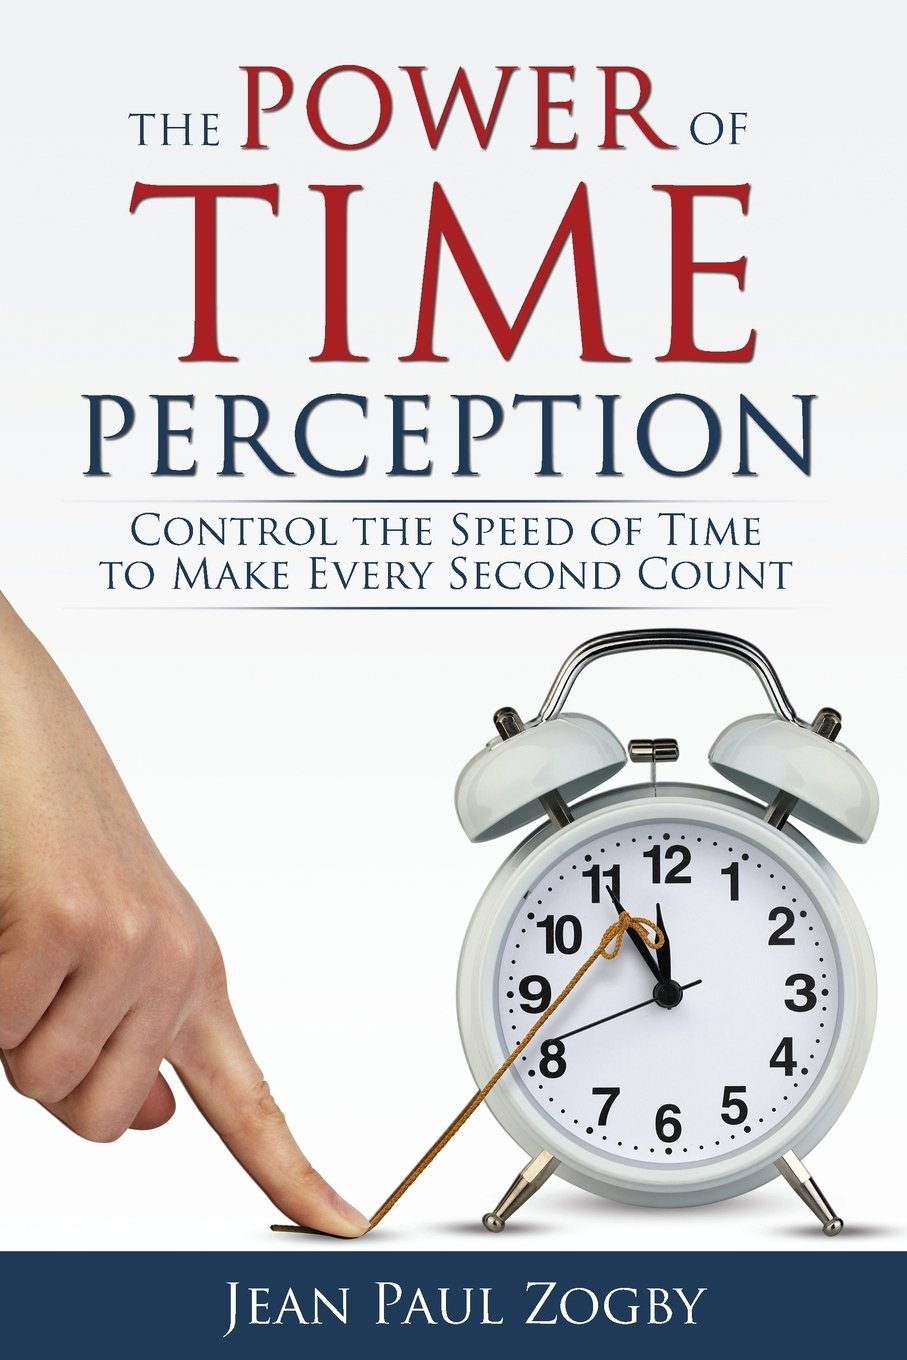 Time perception